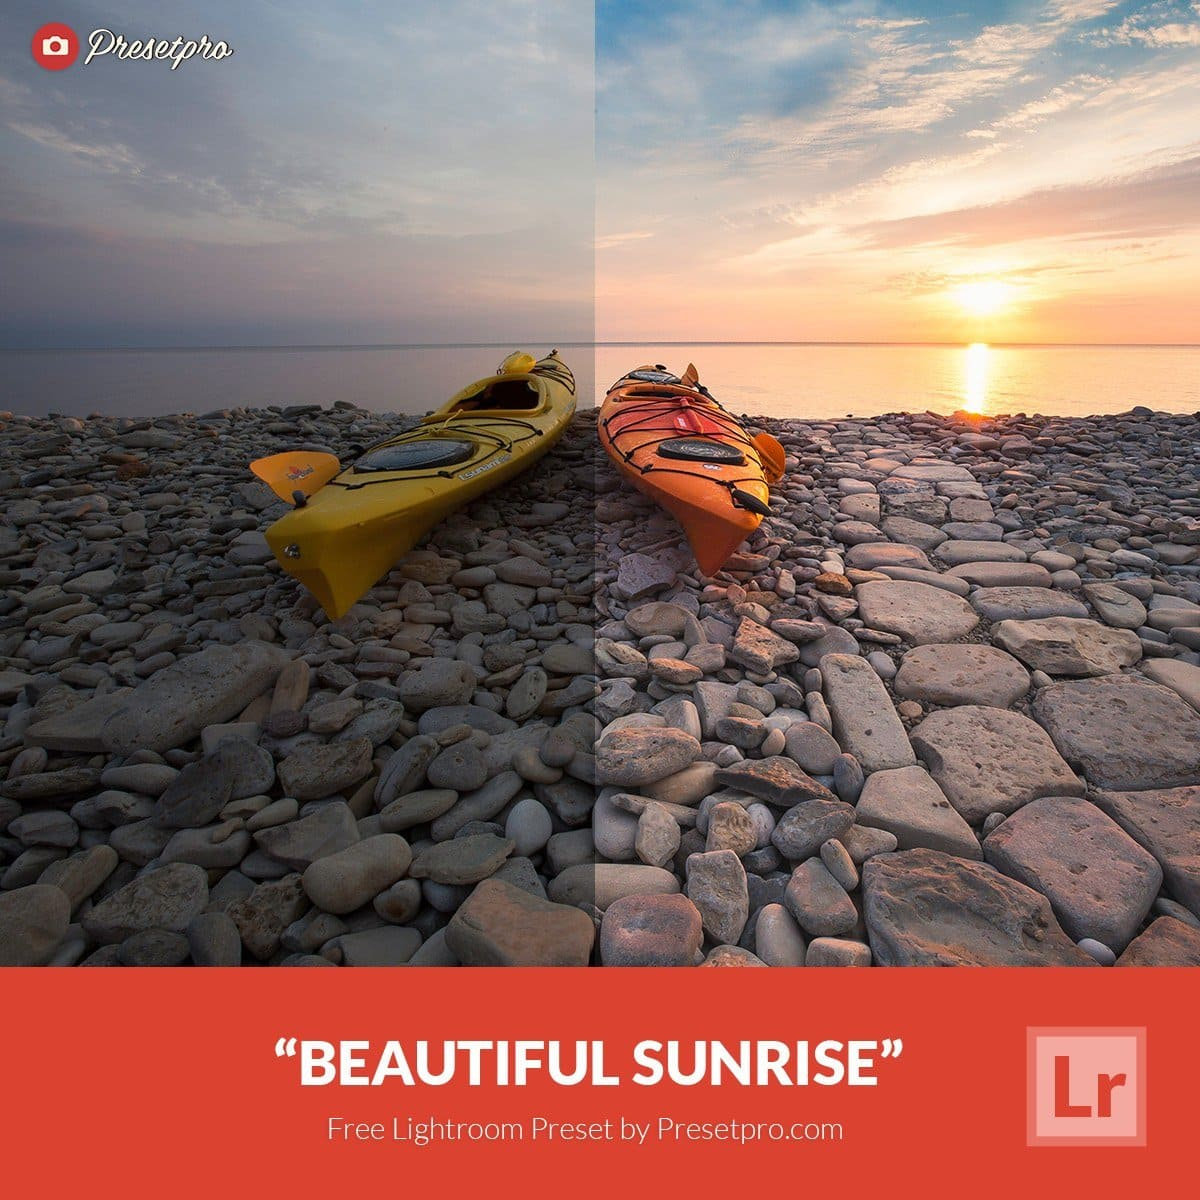 Free-Lightroom-Preset-Beautiful-Sunrise-Presetpro.com